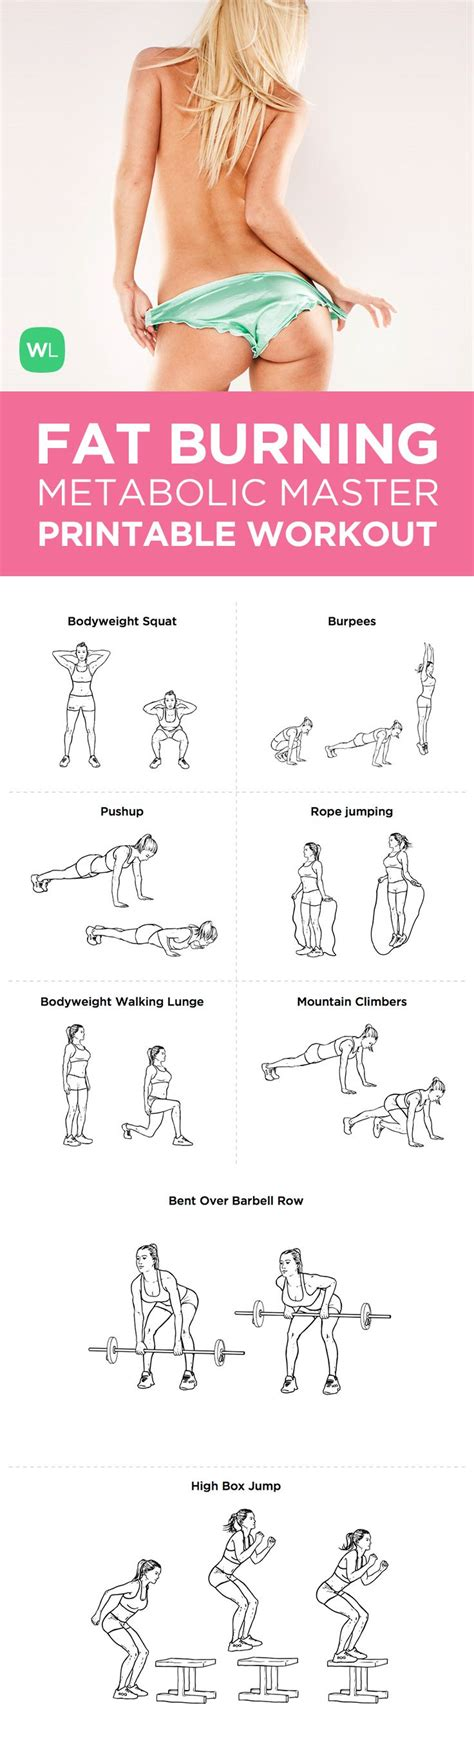 Serious fat burning exercise programs picture 3